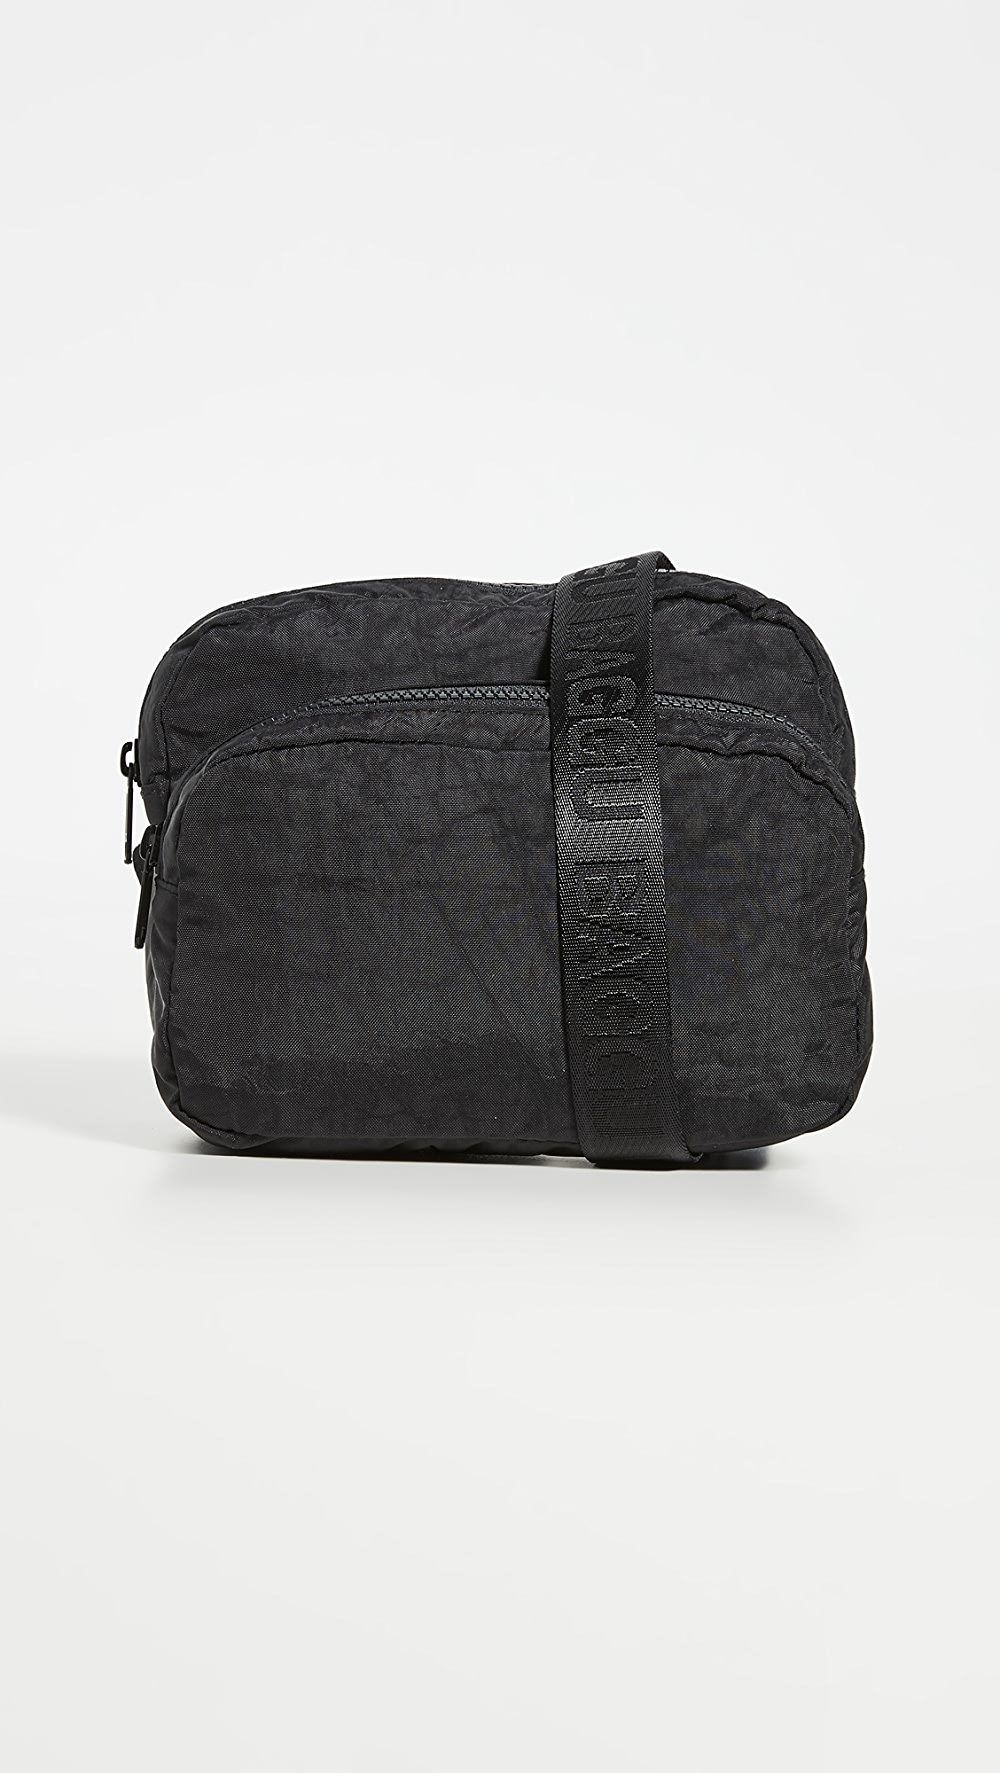 Active Baggu - Fanny Pack High Quality Materials